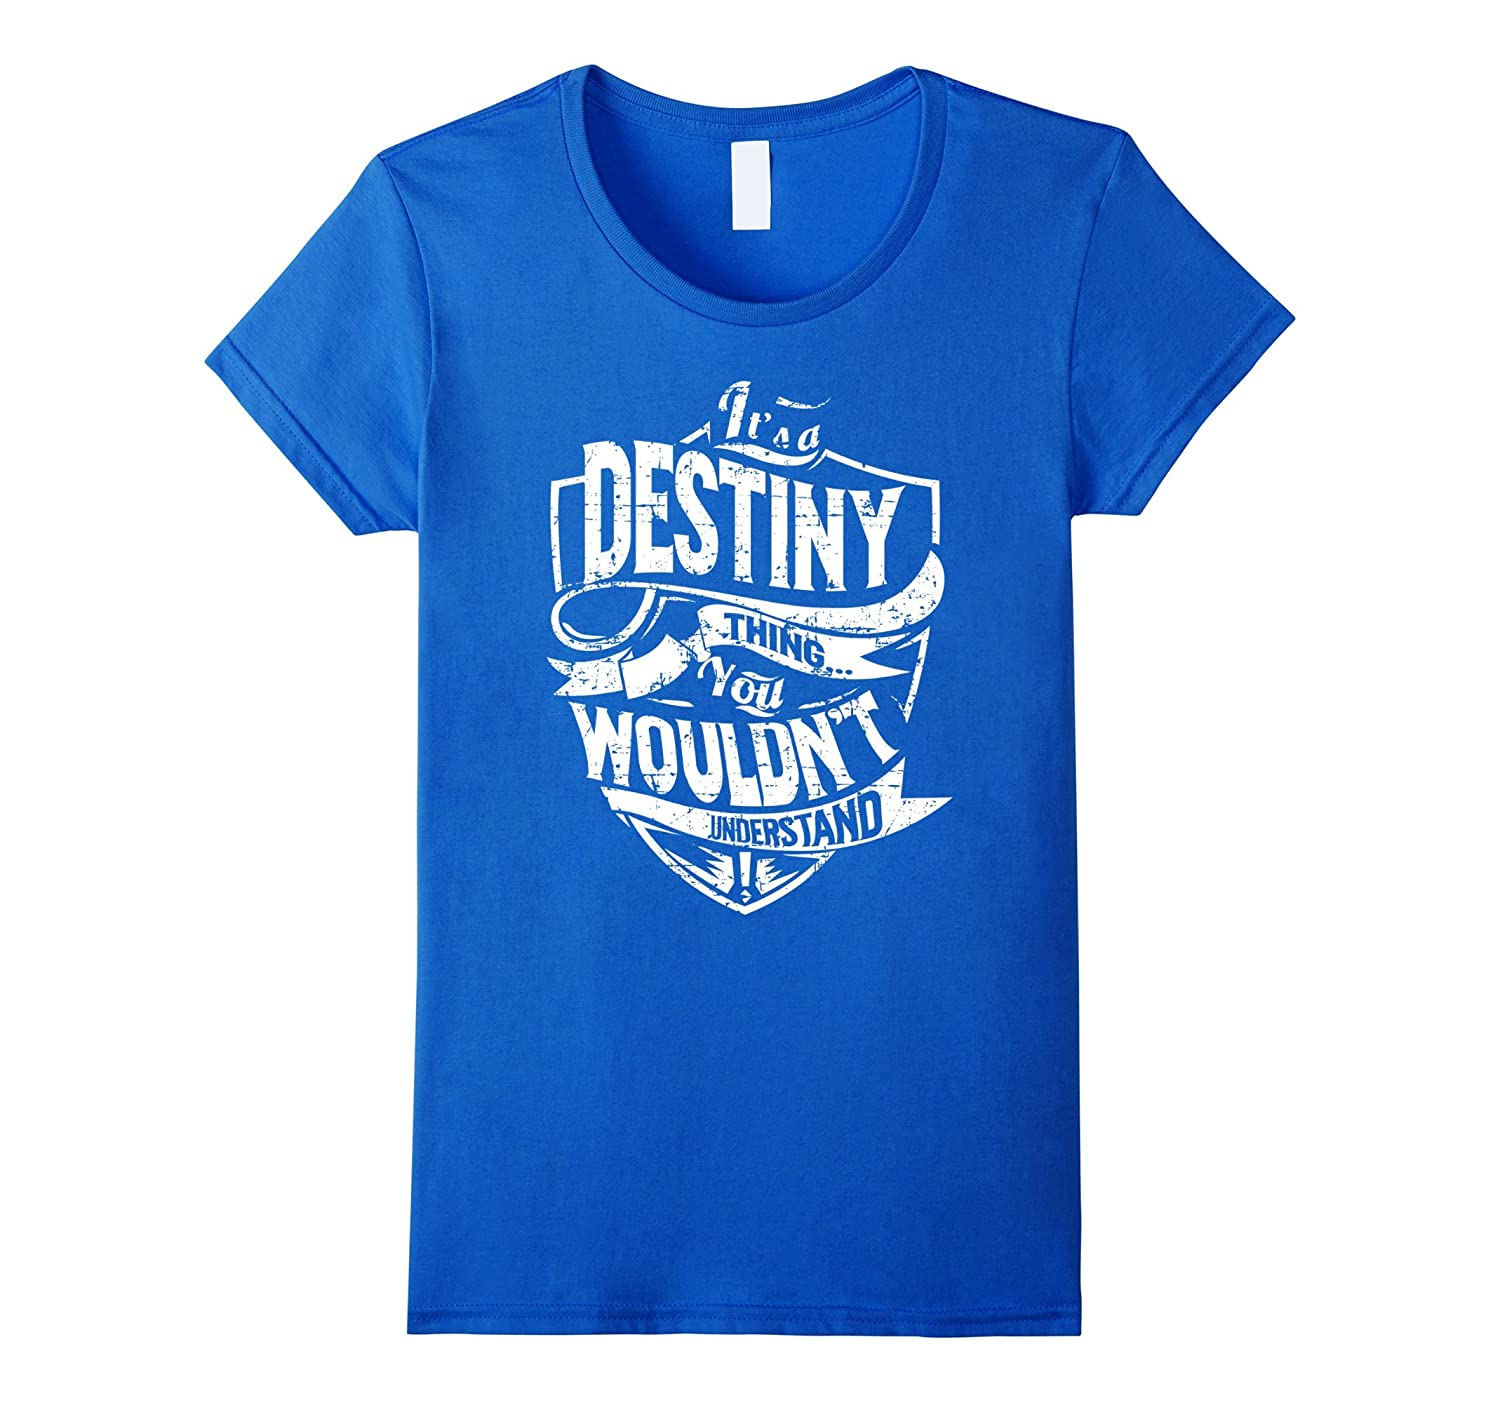 It's A Destiny Thing You Wouldn't Understand T-Shirt